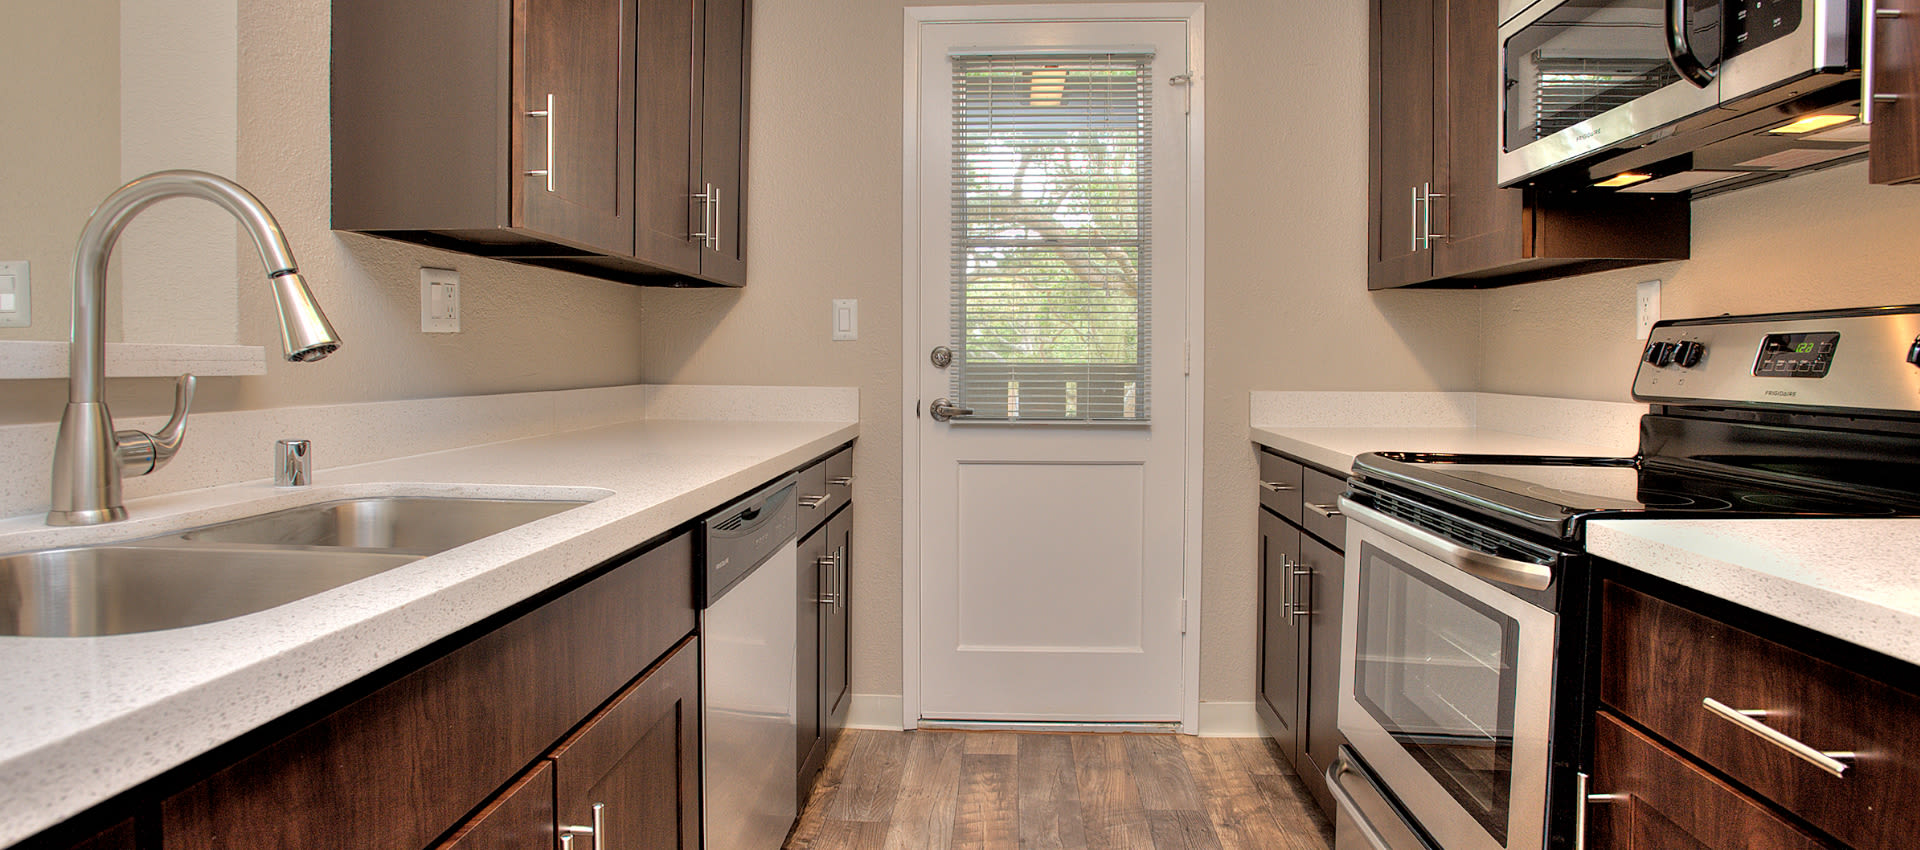 Upgraded Kitchen at Seventeen Mile Drive Village Apartment Homes in Pacific Grove